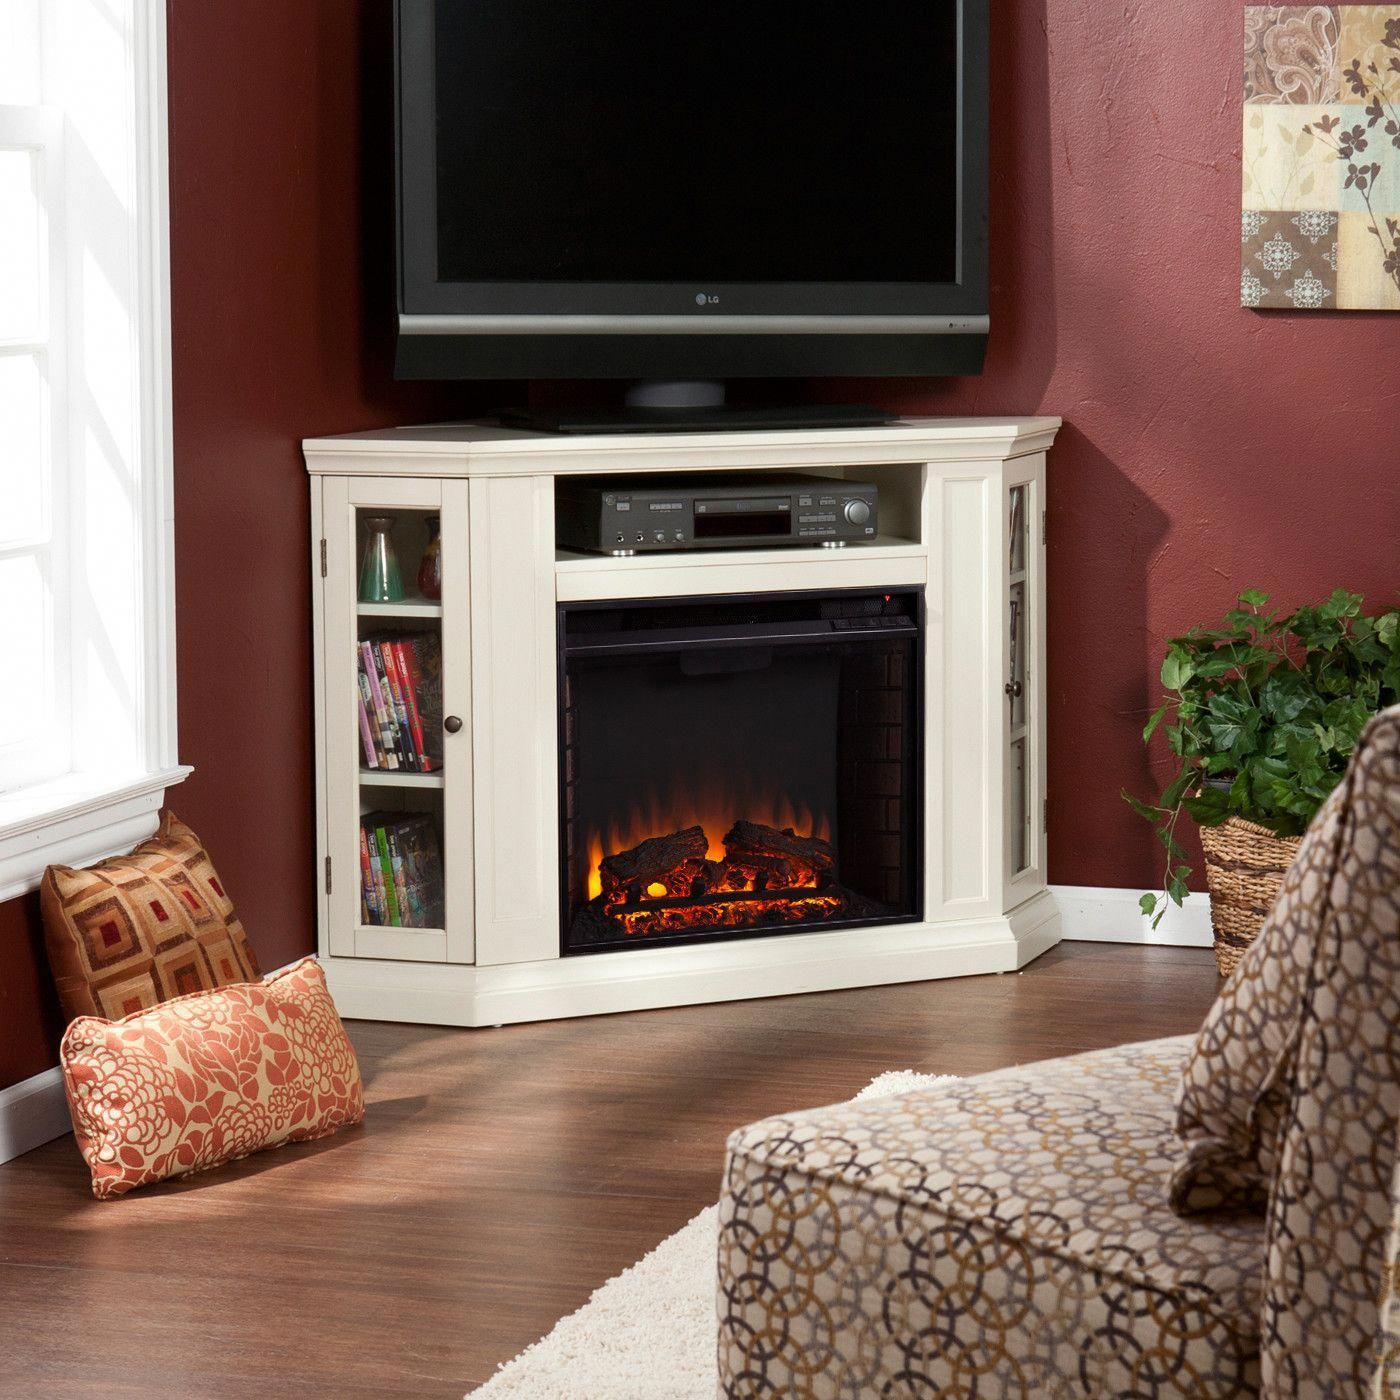 Oyster Bay Electric Fireplace with TV Stand tvstand tv stand diy